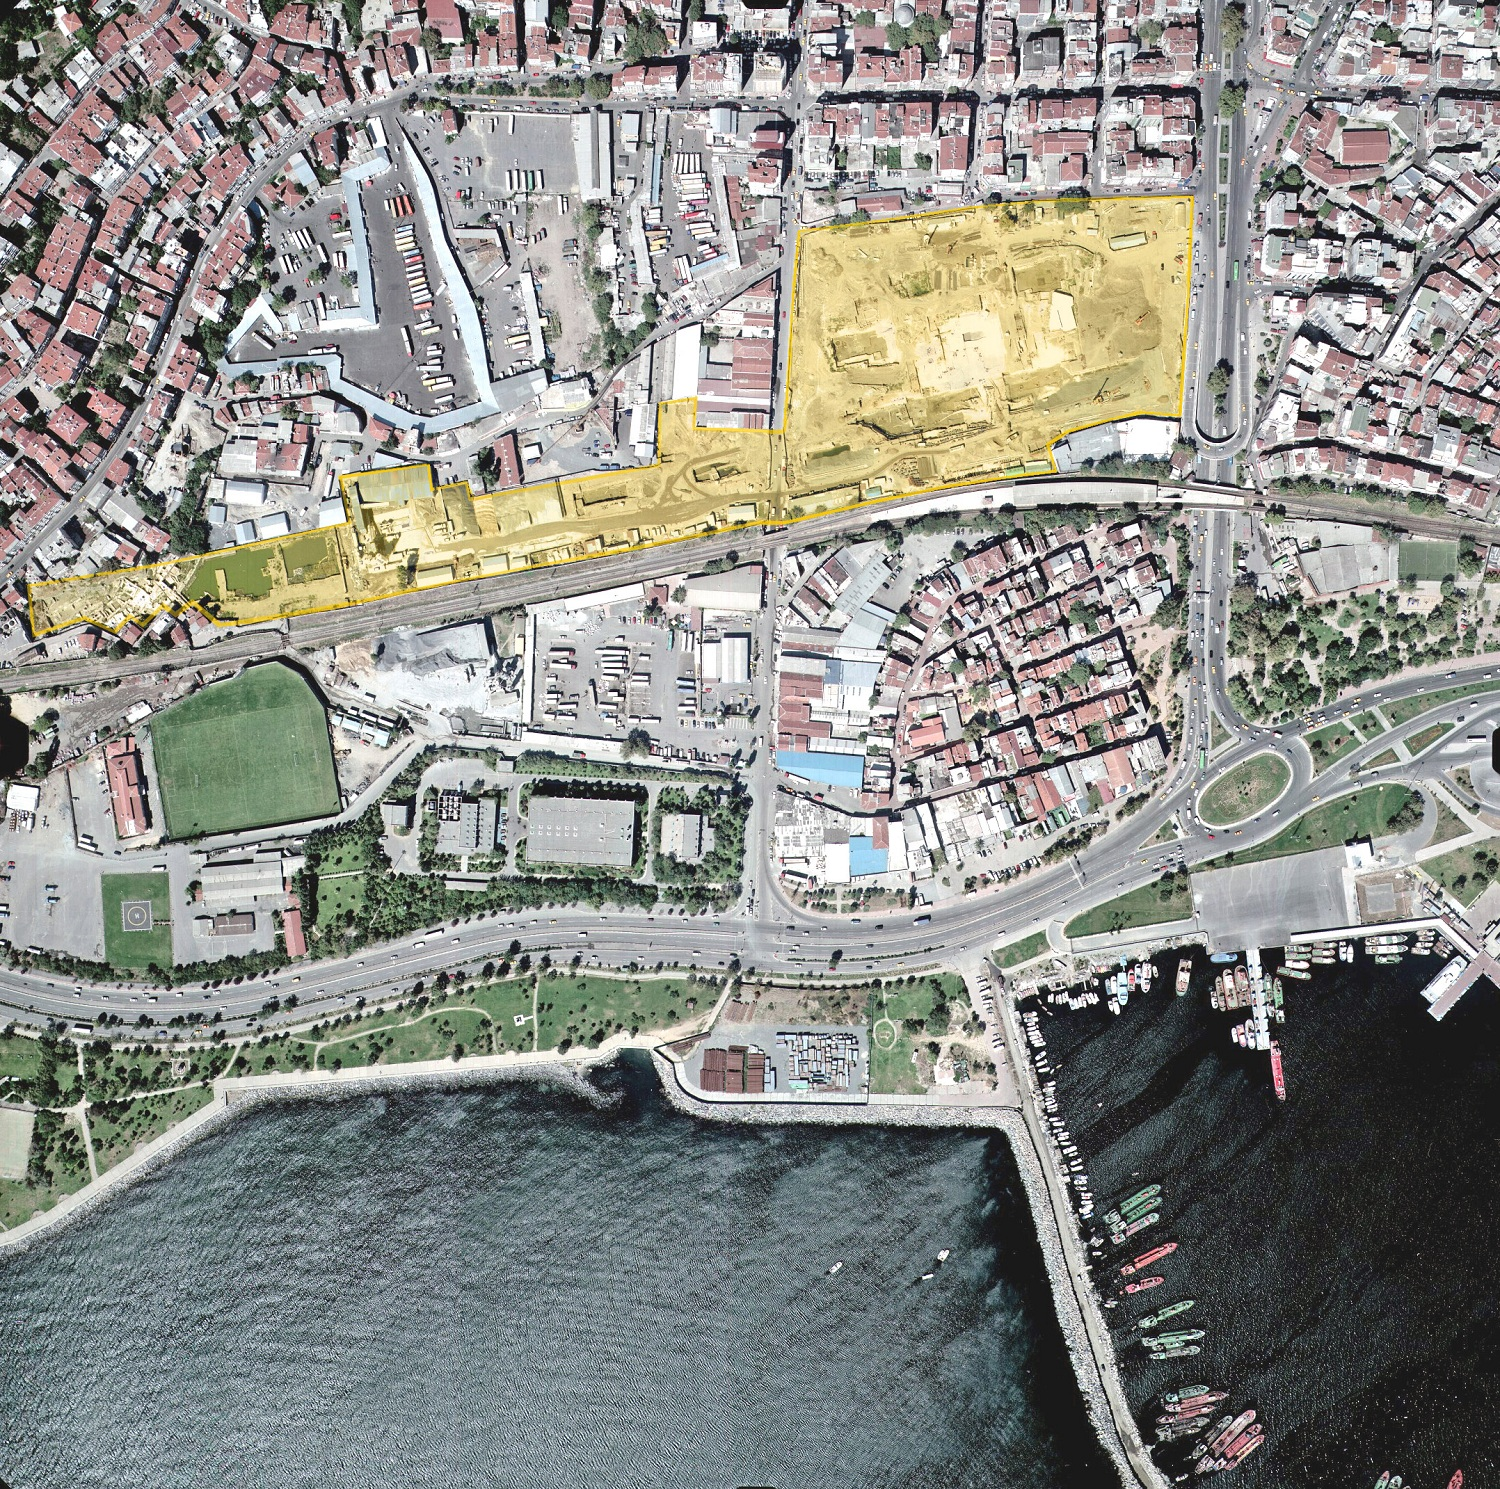 Aerial view of Yenikapı coastline and the excavation area from the east.